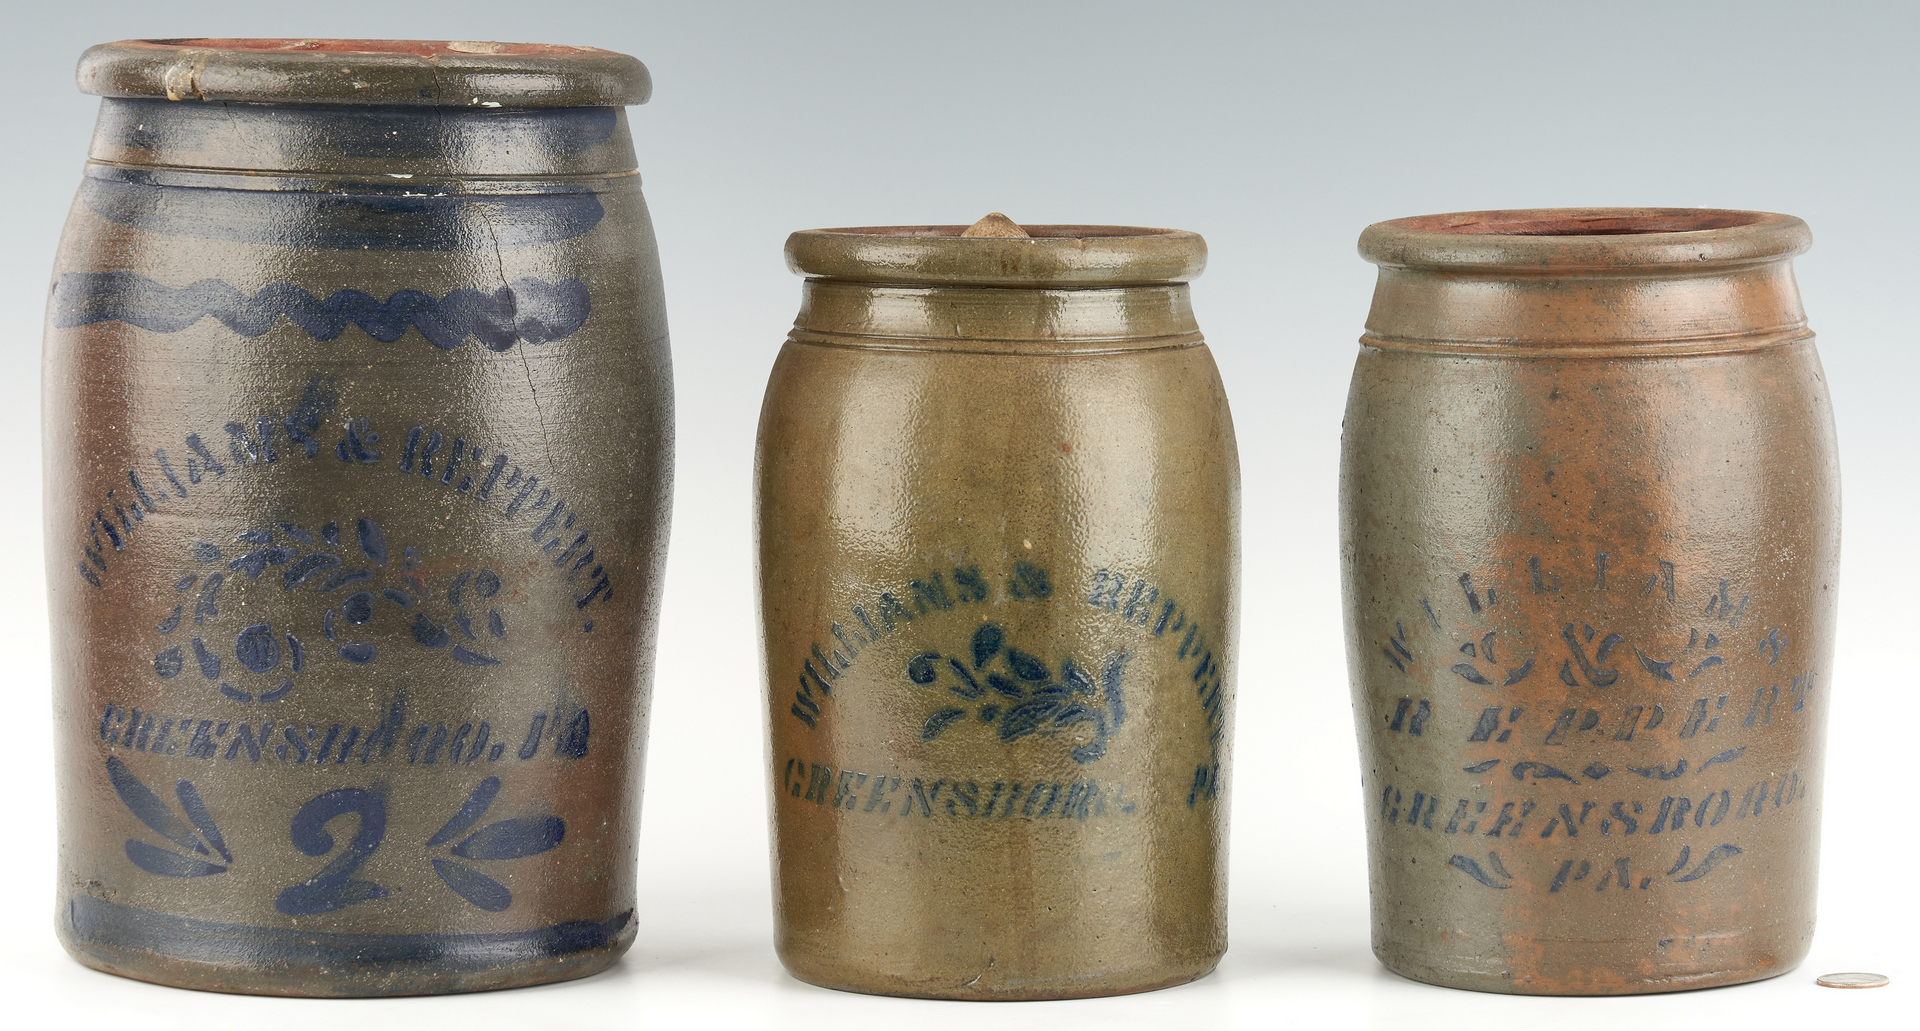 Lot 1074: 3 Williams & Reppert, Greensboro, PA Stoneware Jars